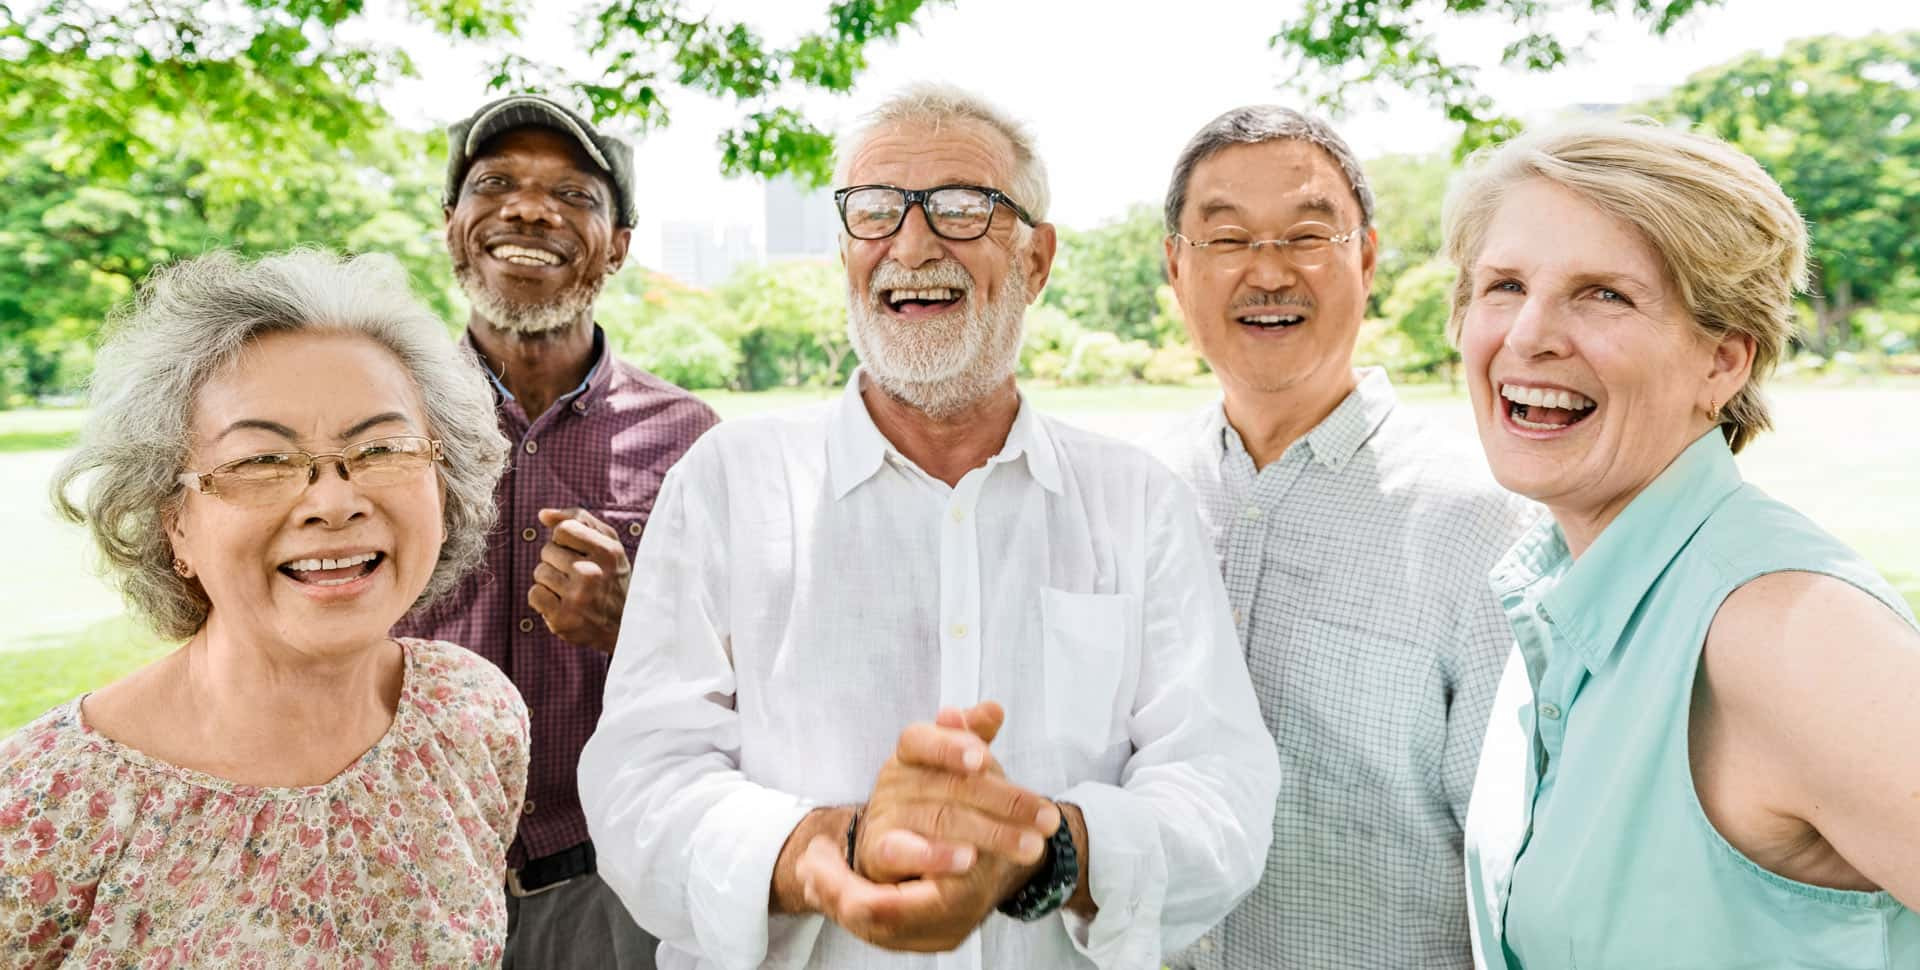 A group of seniors is smiling while outdoors at a park.